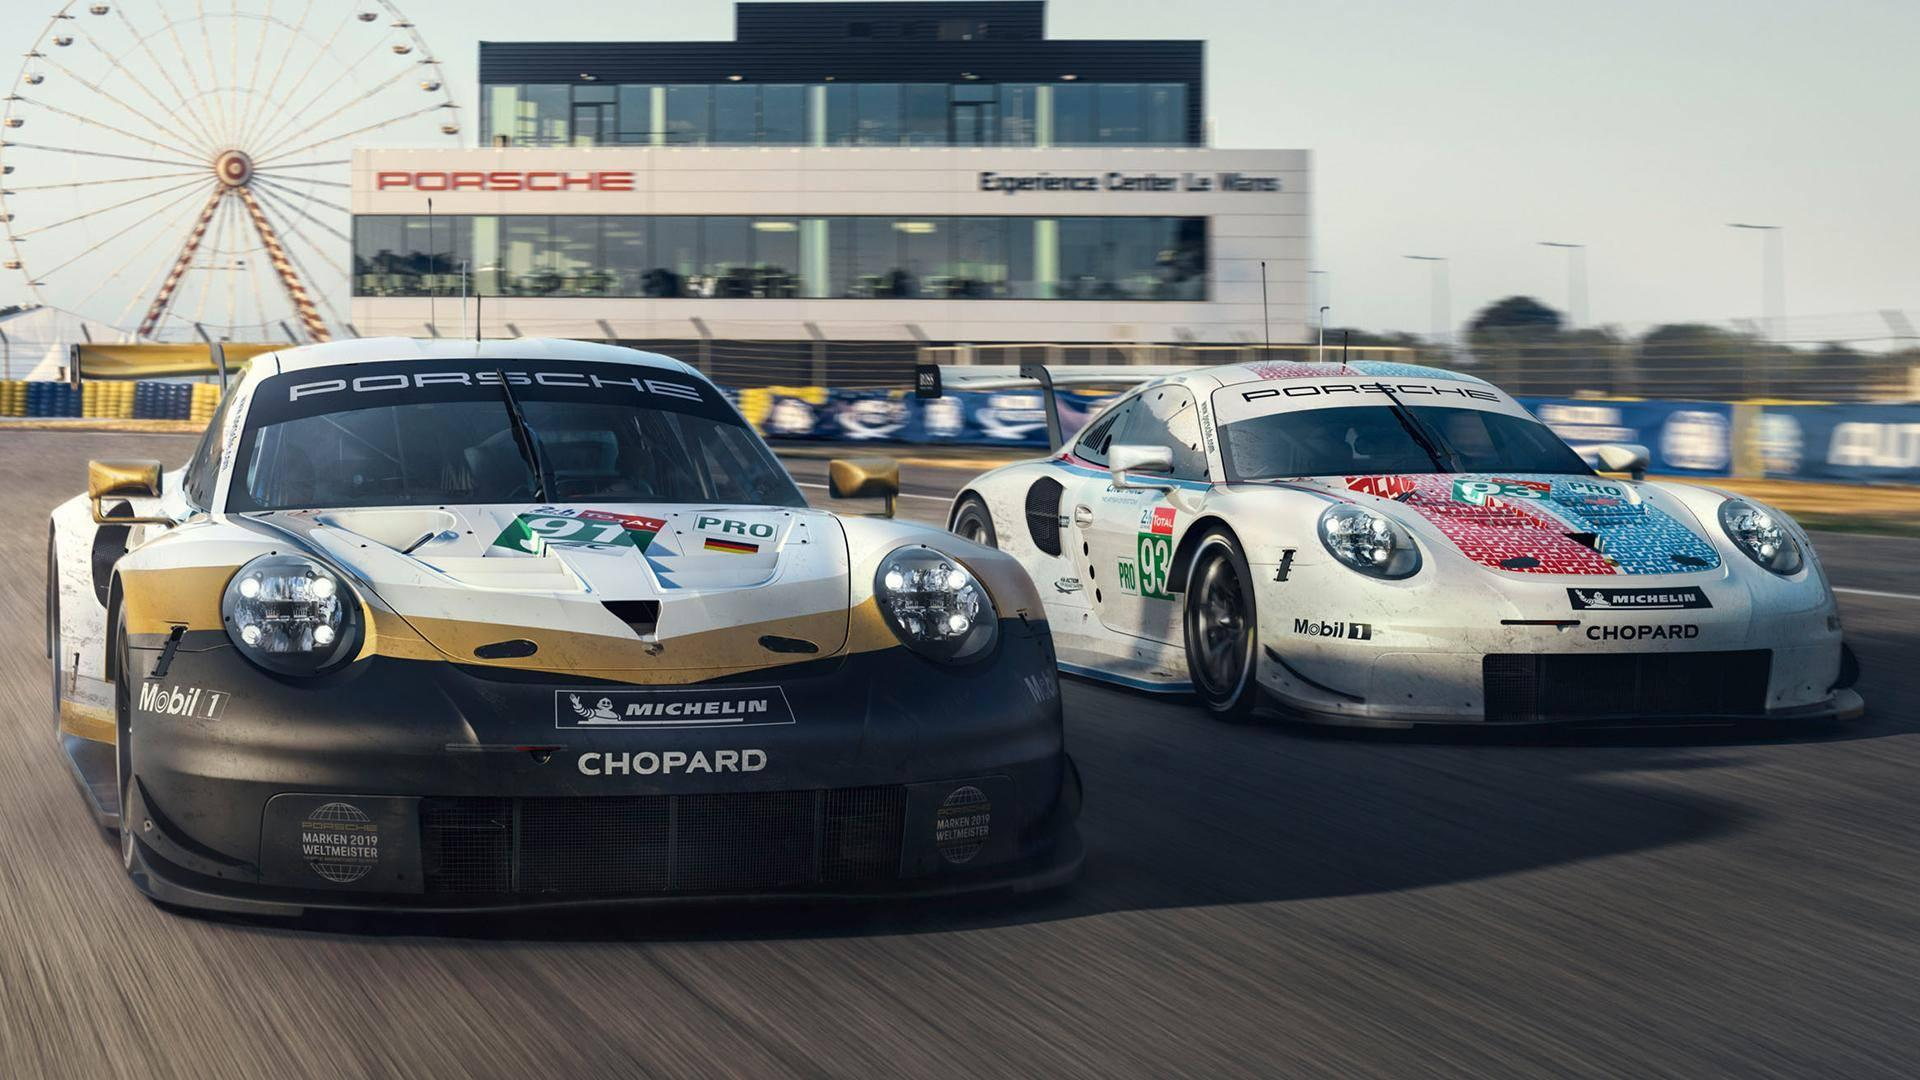 Preview of 2019 Porsche RSR Le Mans Livery  by Paul Mansell